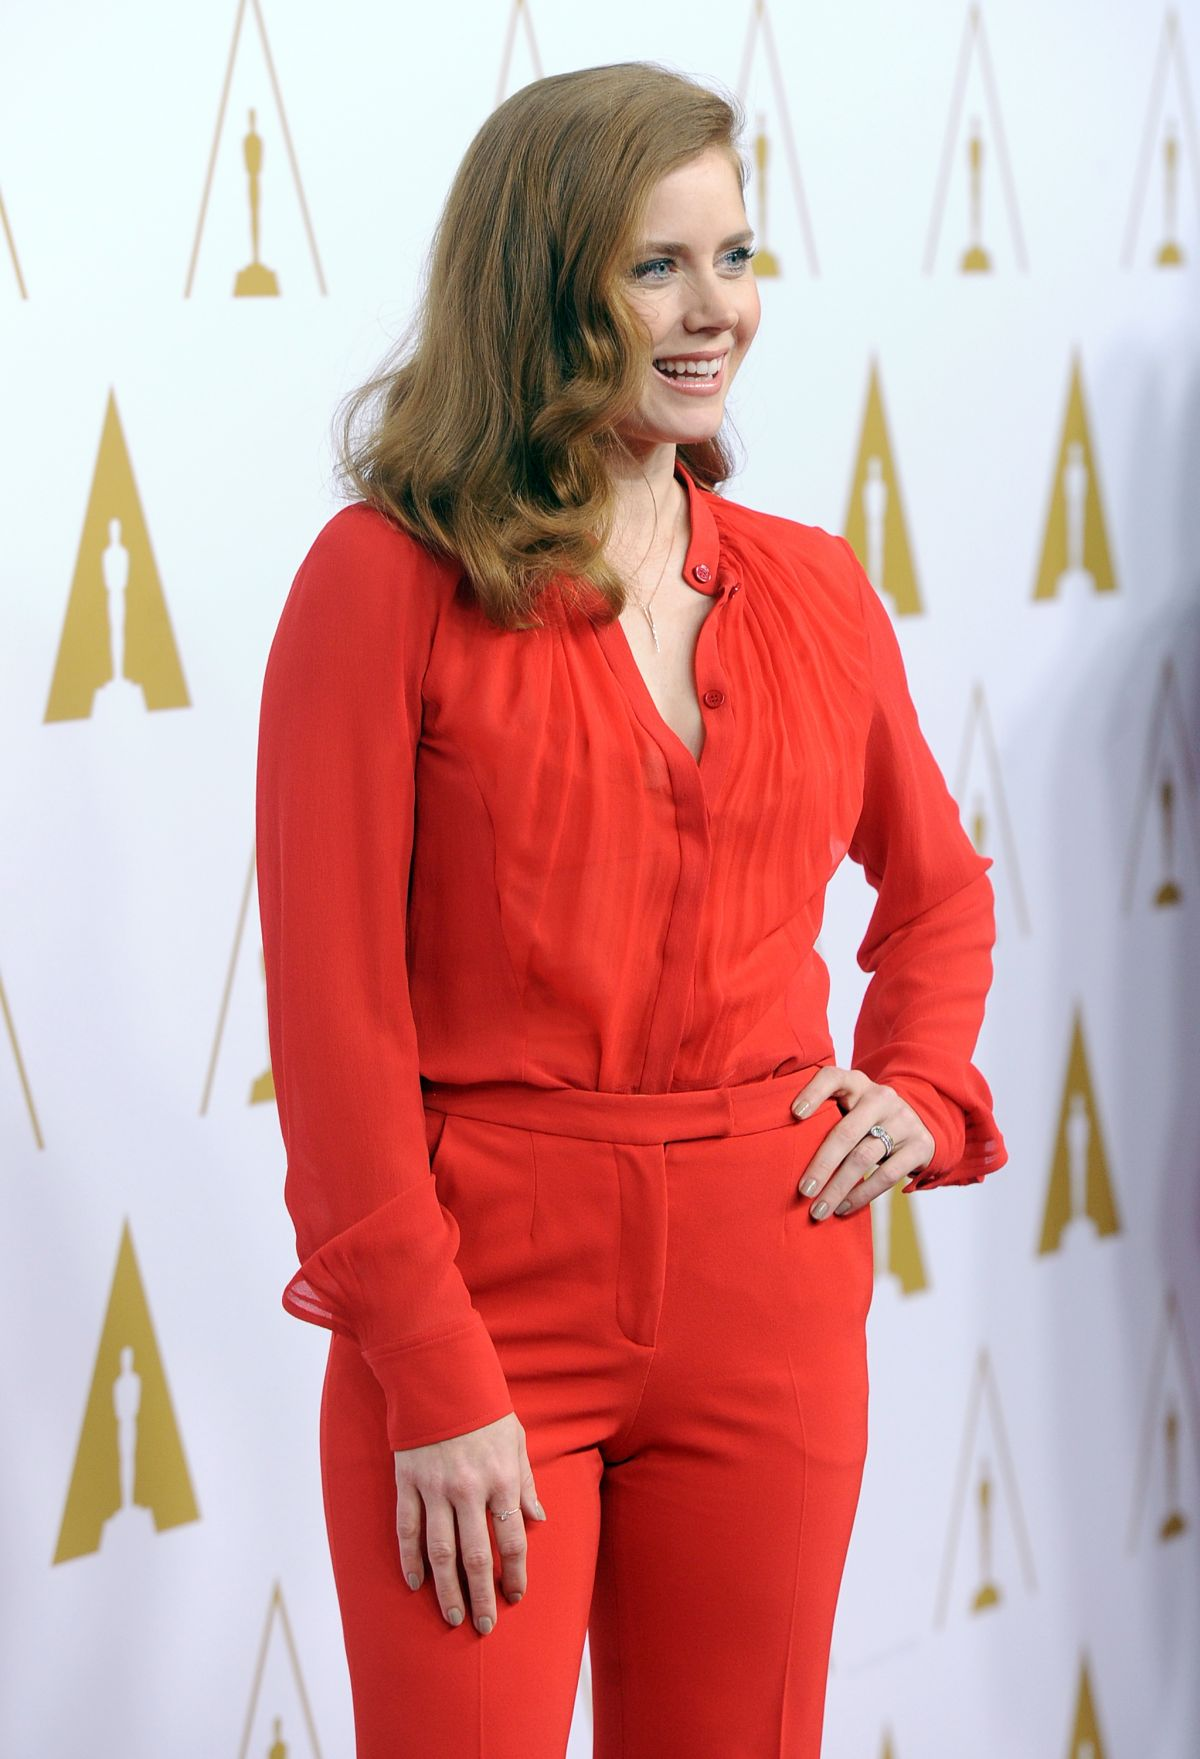 AMY ADAMS at 2014 Academy Awards Nominees Luncheon in